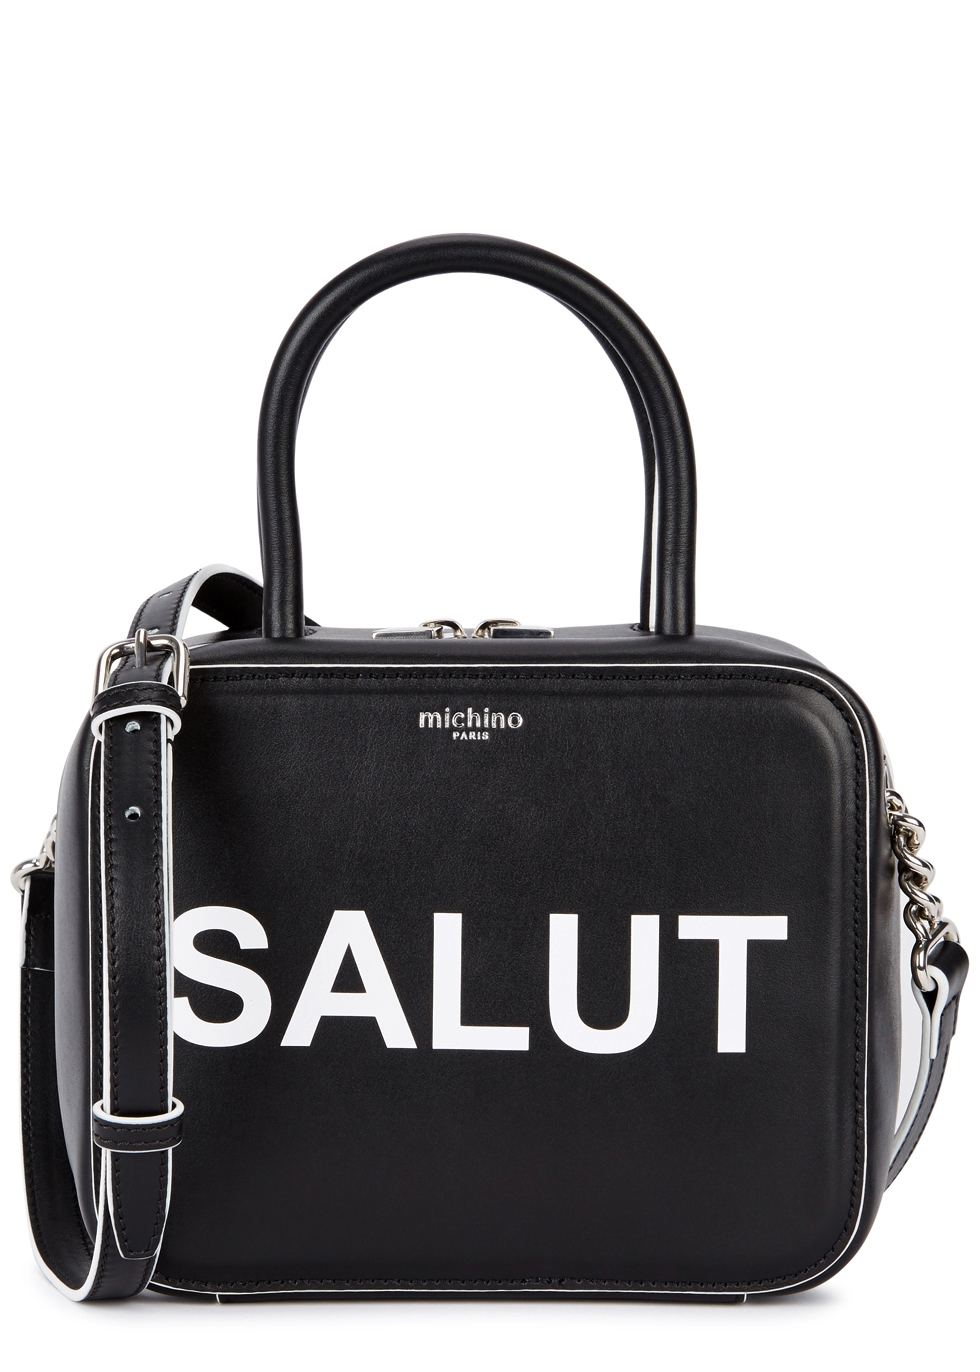 MICHINO PARIS Squarit Salut Leather Shoulder Bag in Black And White